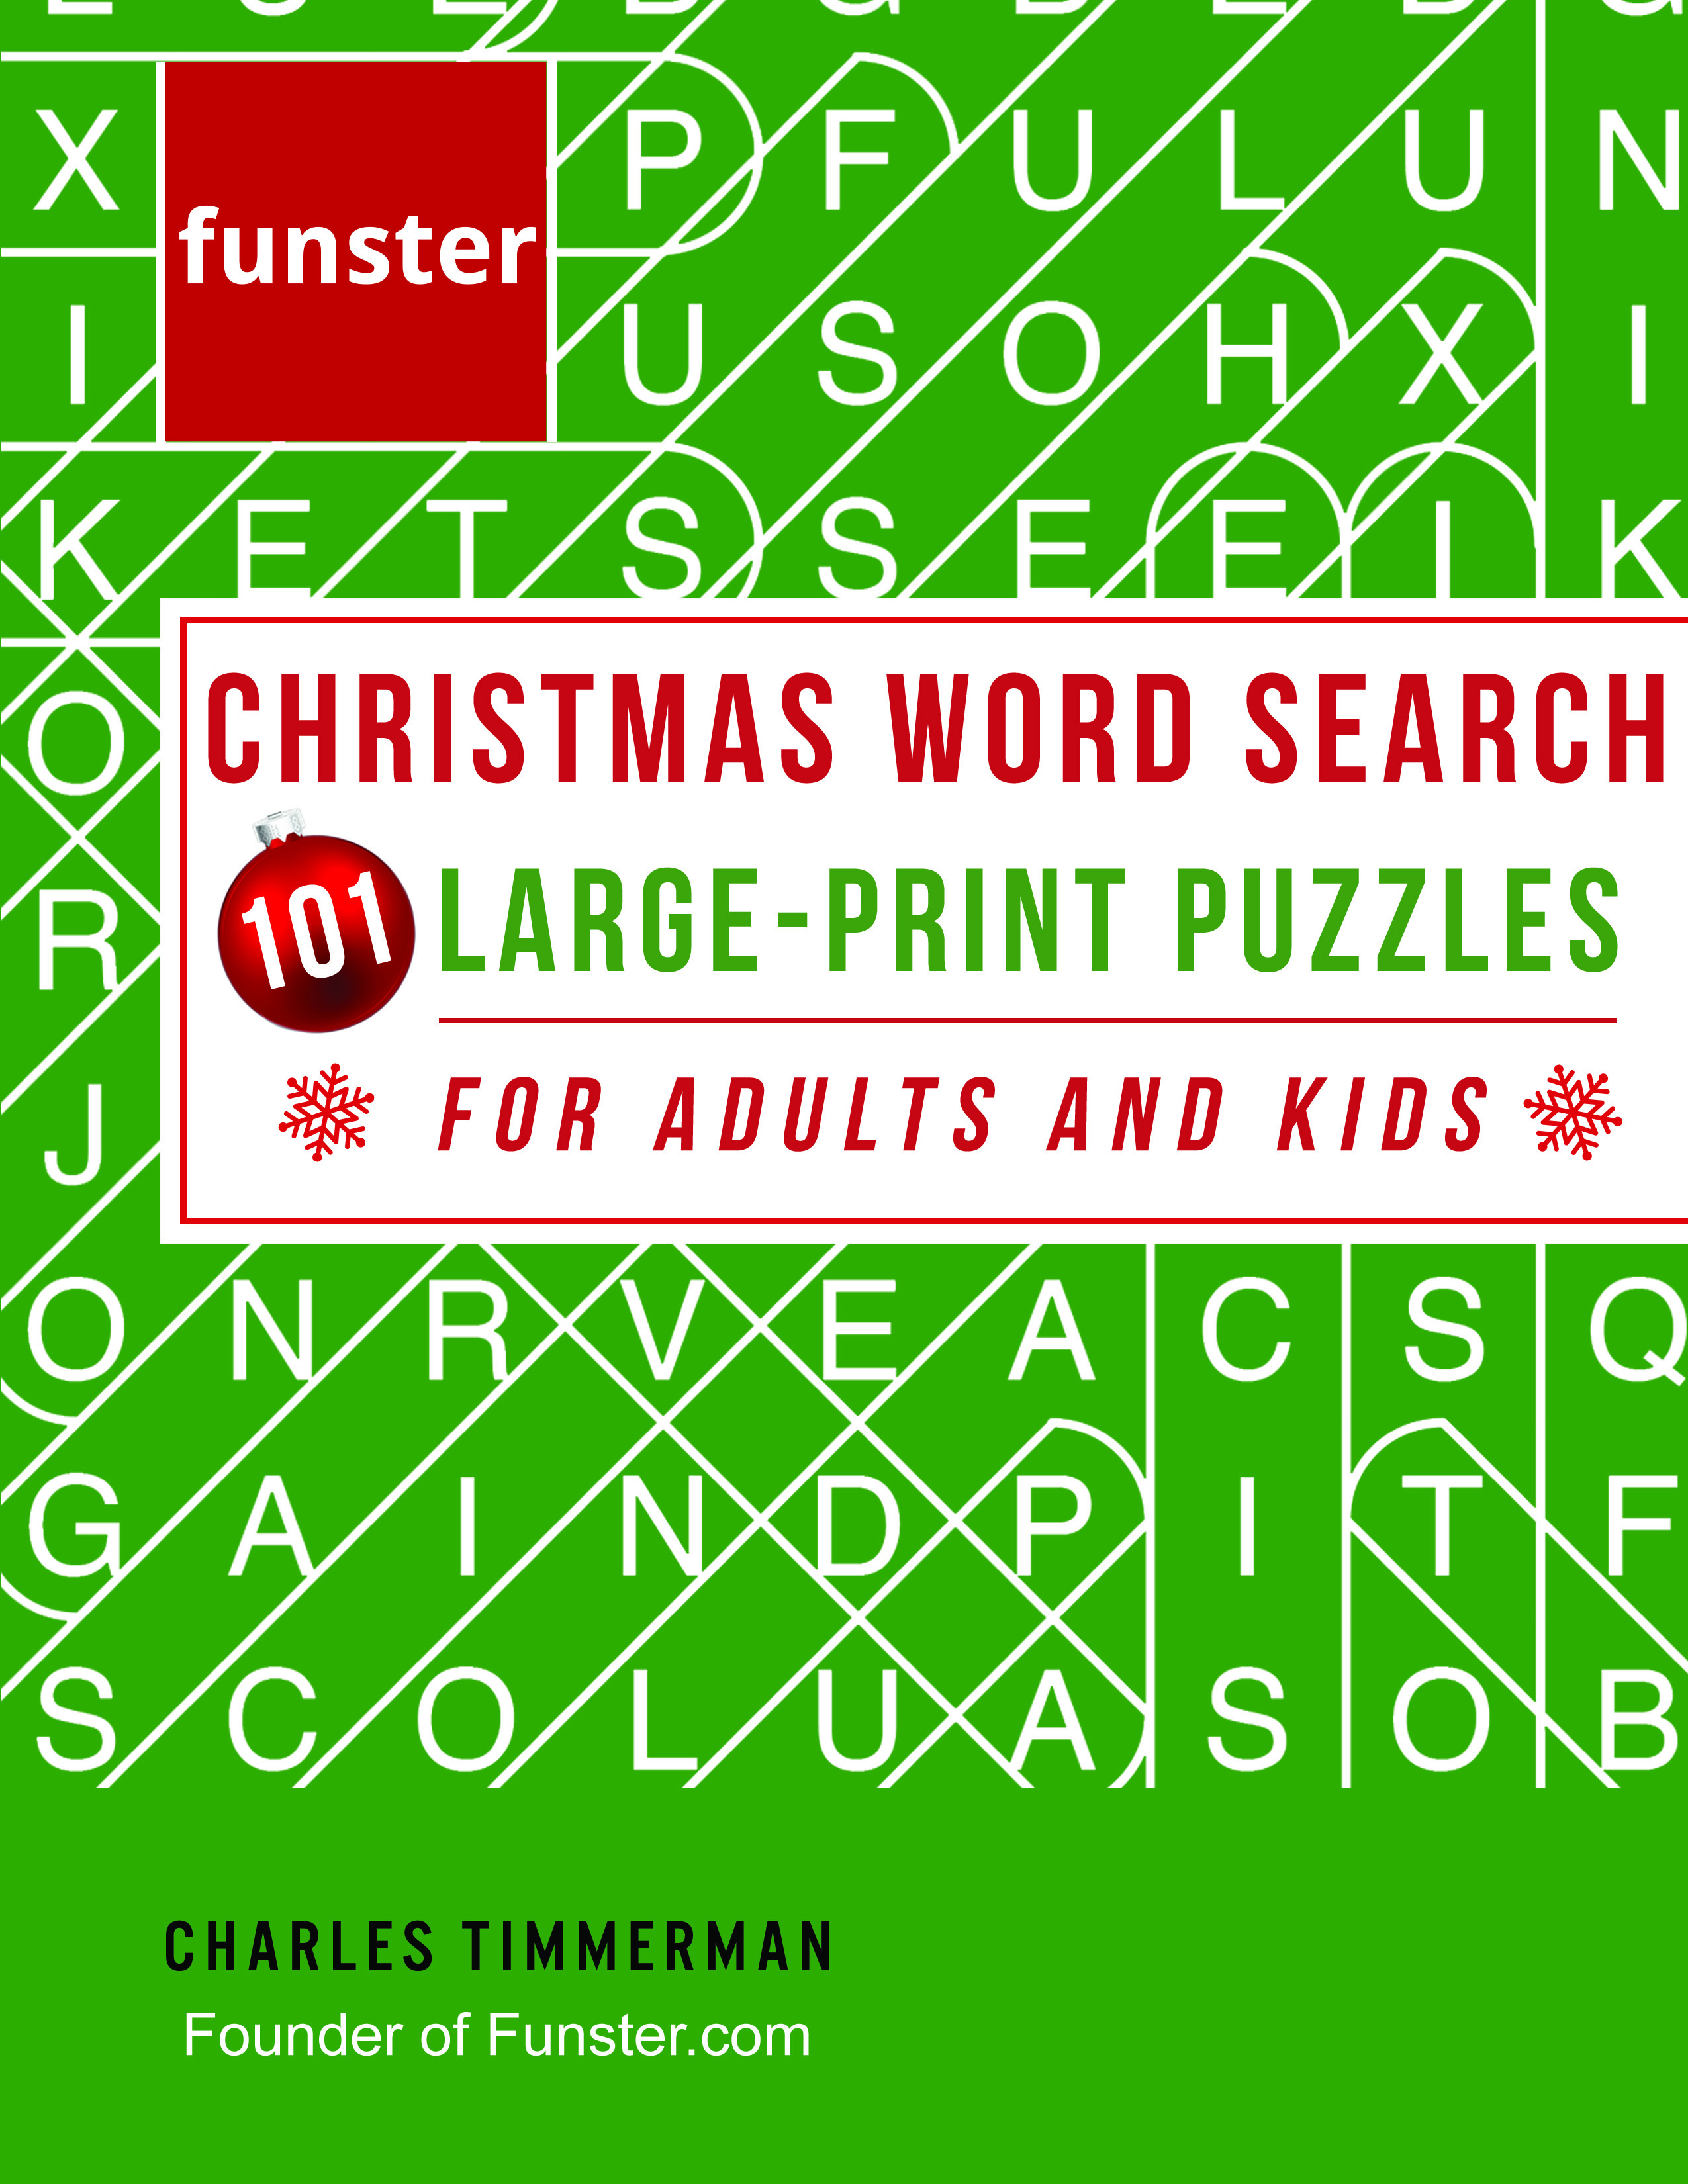 Funster Christmas Word Search 101 Large-Print Puzzles for Adults and Kids